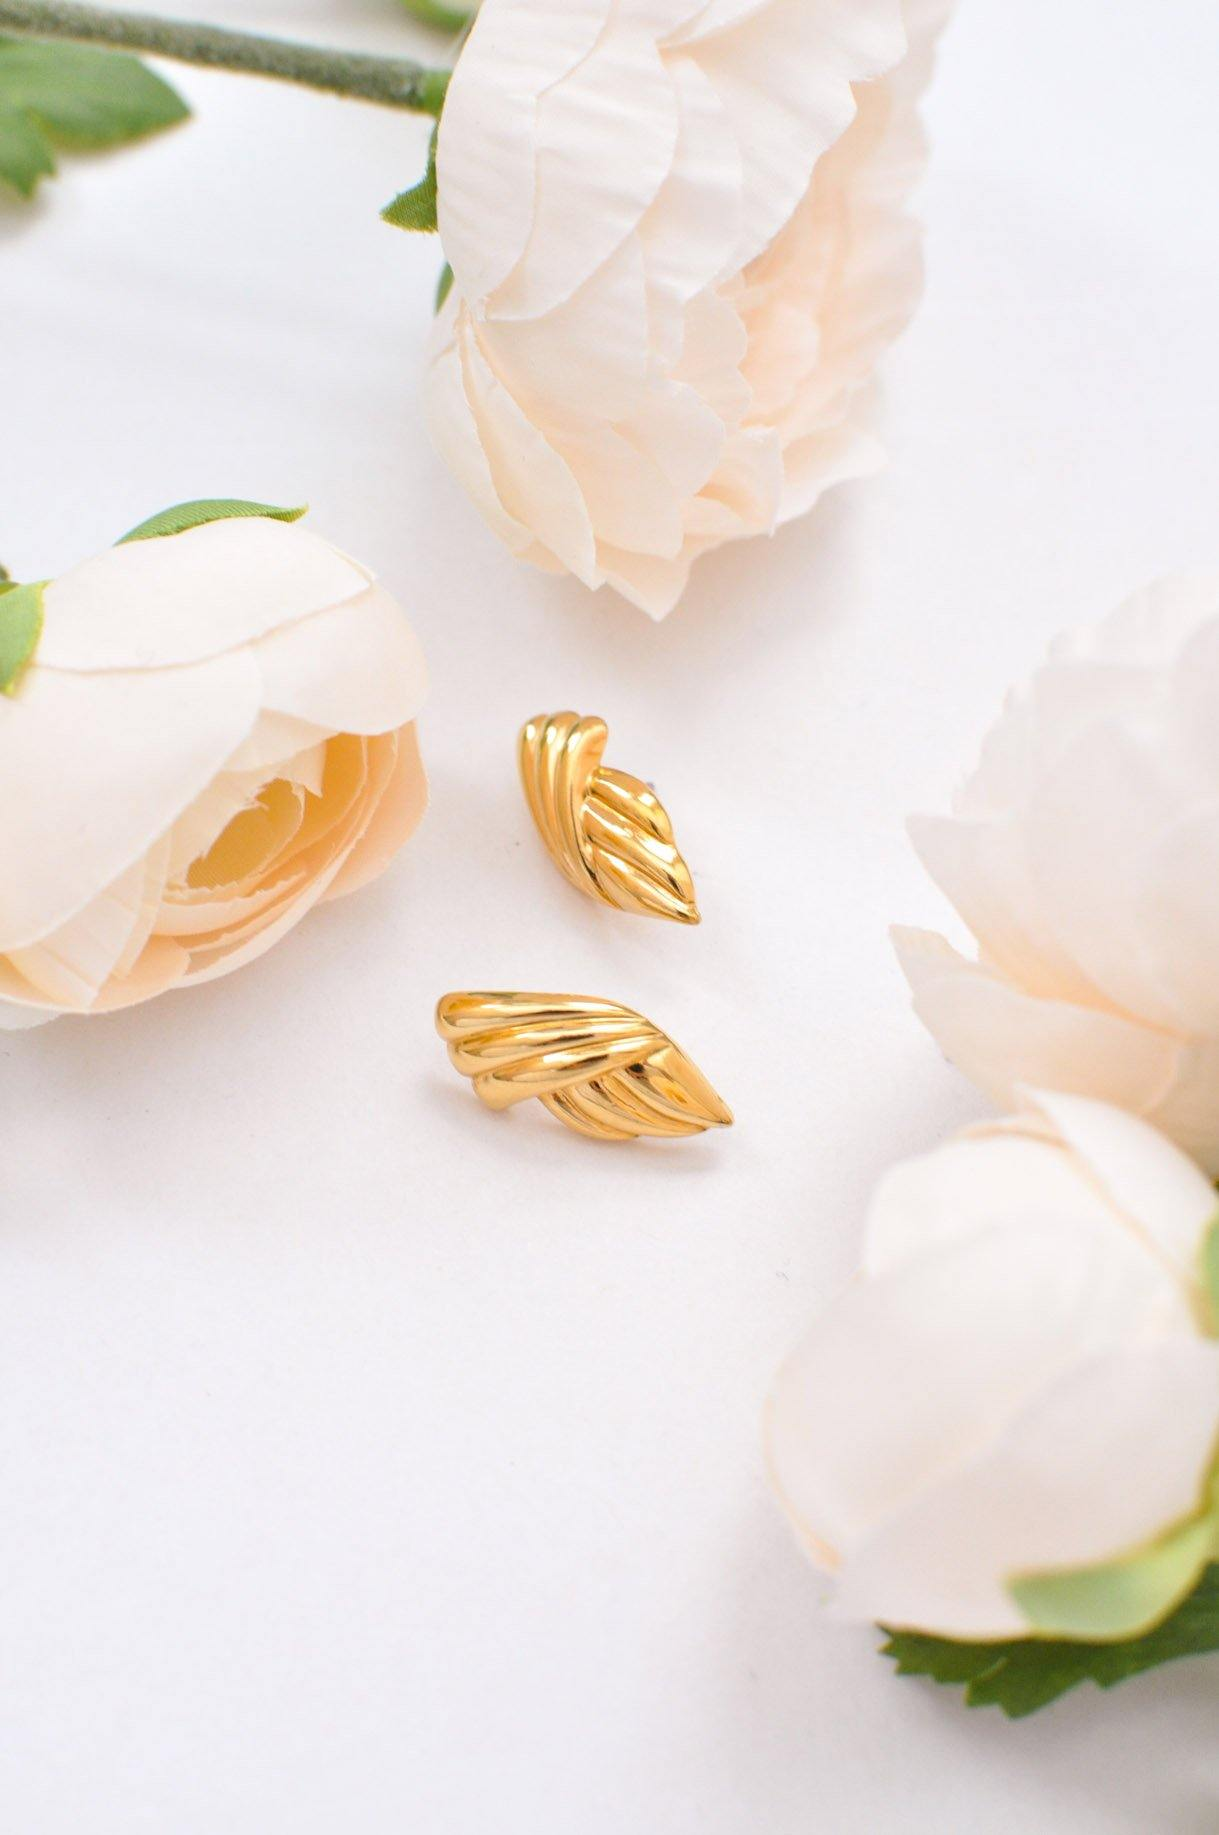 Vintage Draped Pierced Earrings from Sweet and Spark.